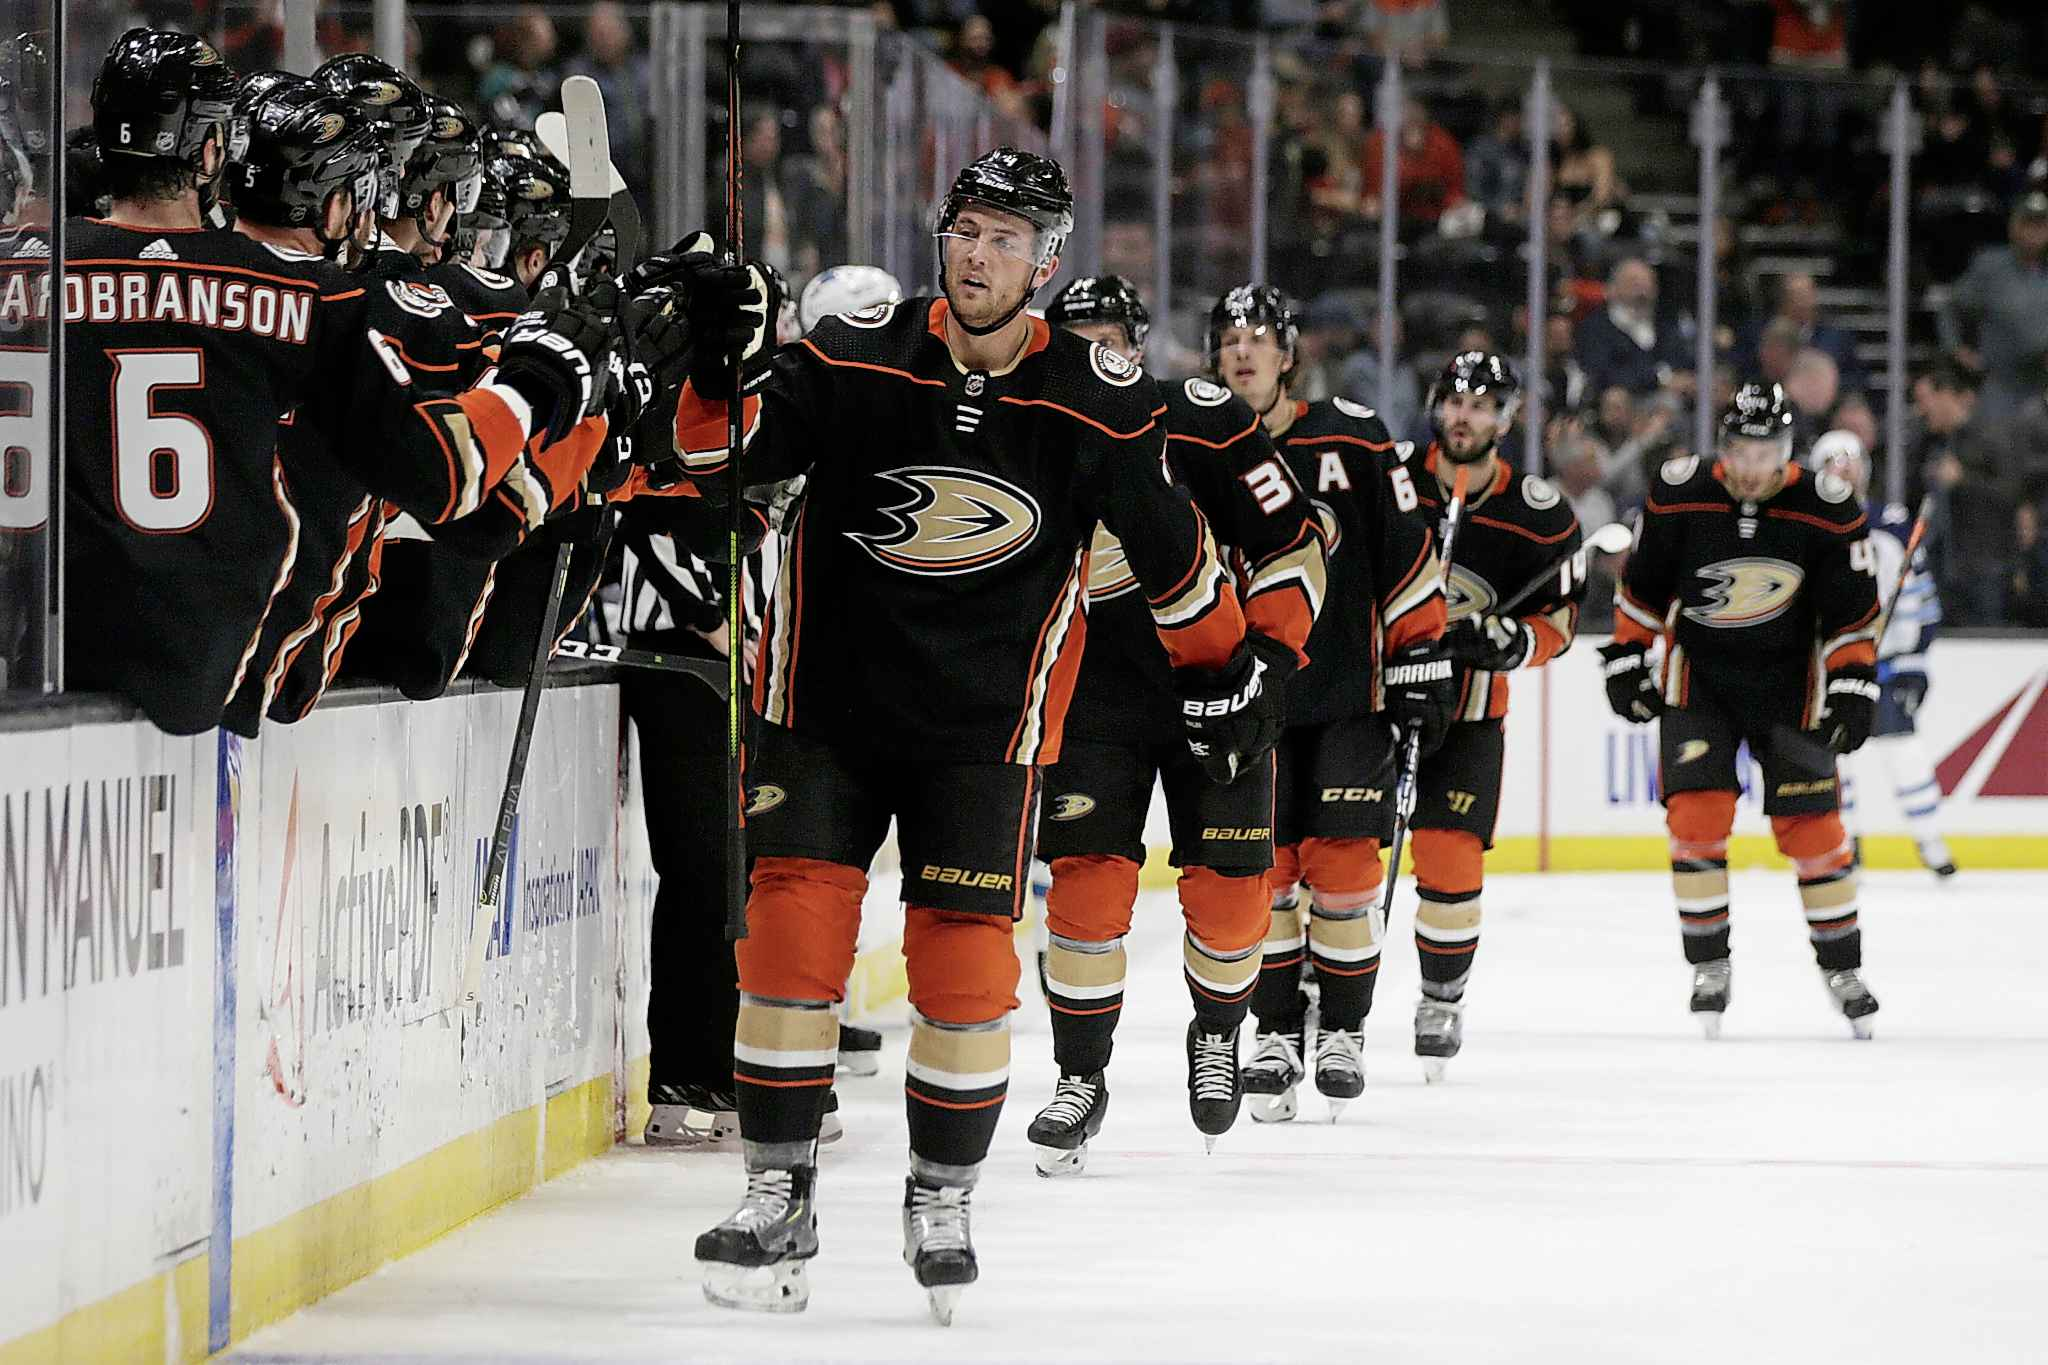 Anaheim Ducks defenceman Cam Fowler, centre, gets congratulations from teammates after scoring on the Winnipeg Jets during the first period in Anaheim, Tuesday.